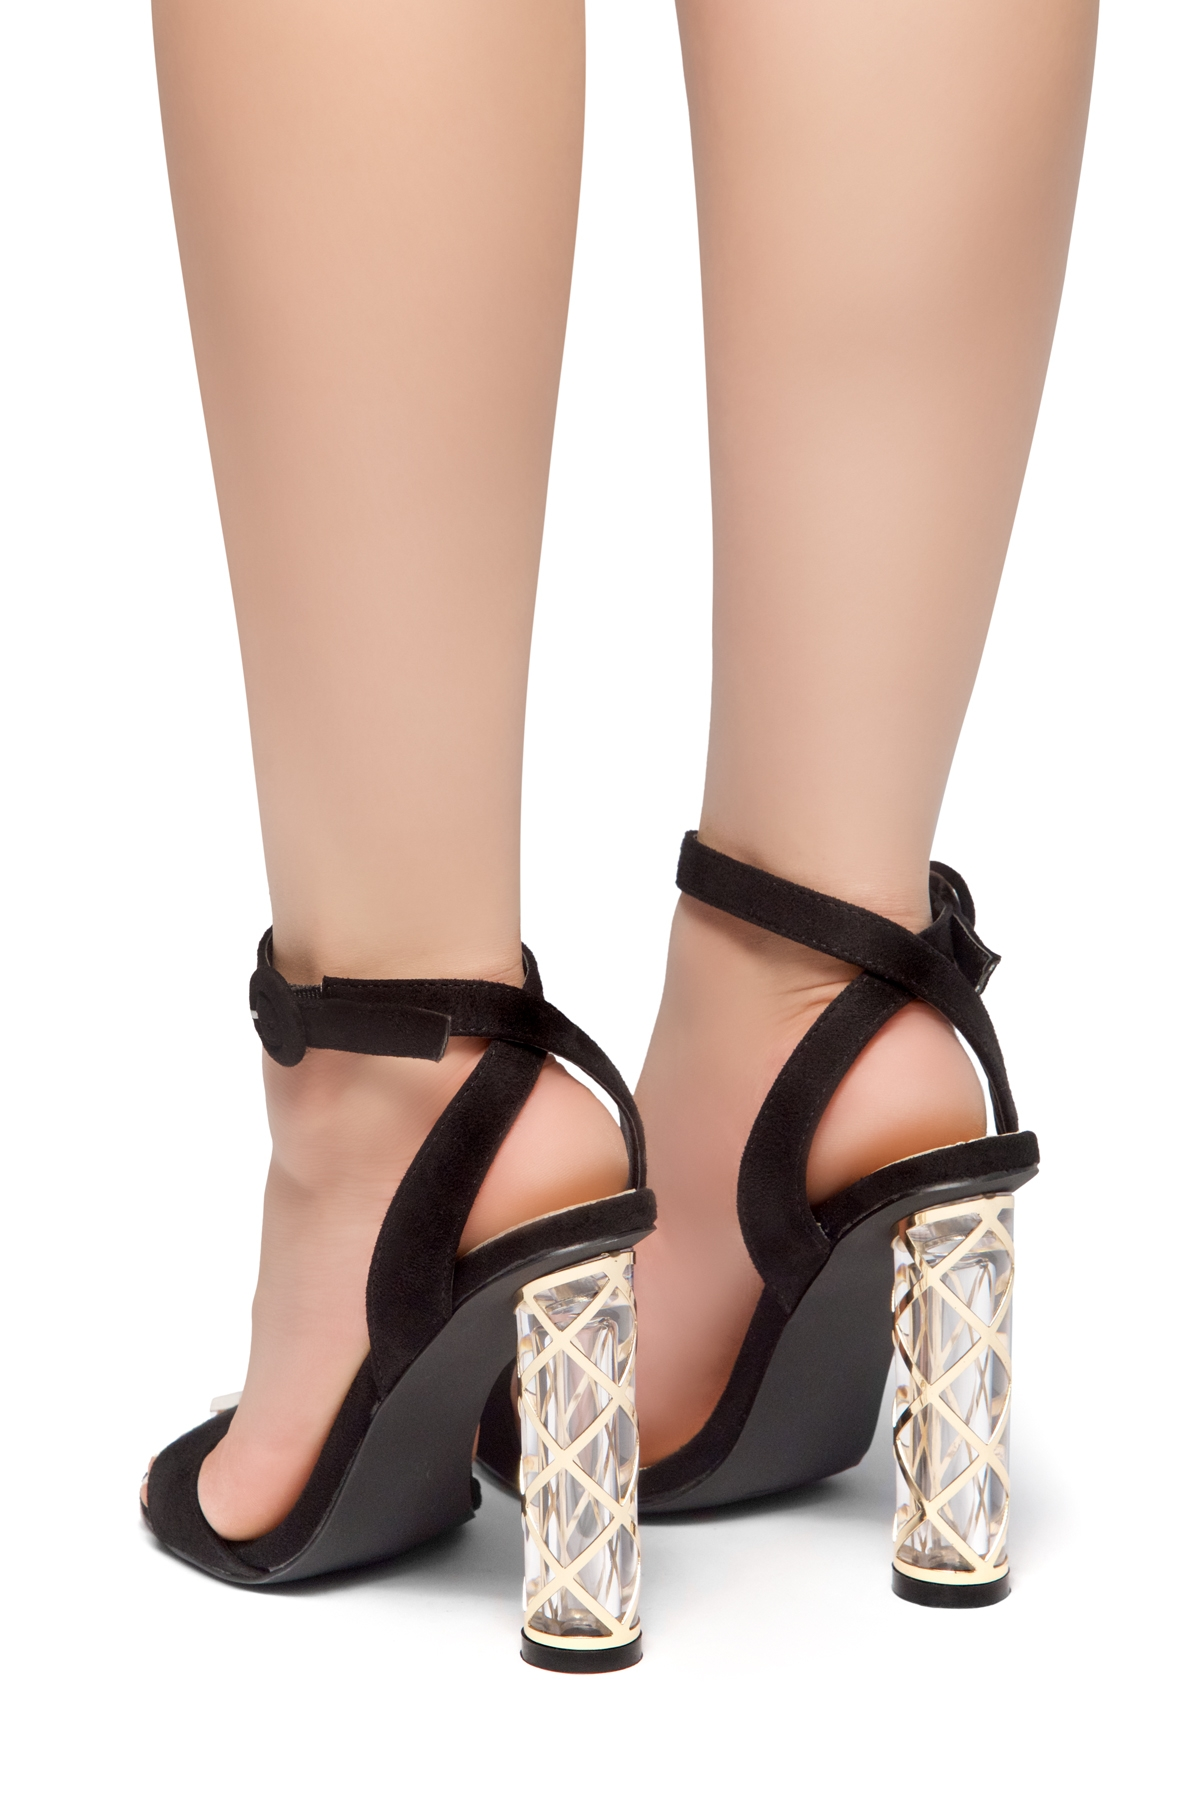 1b2c28052 HerStyle Out Shine-Perspex heel